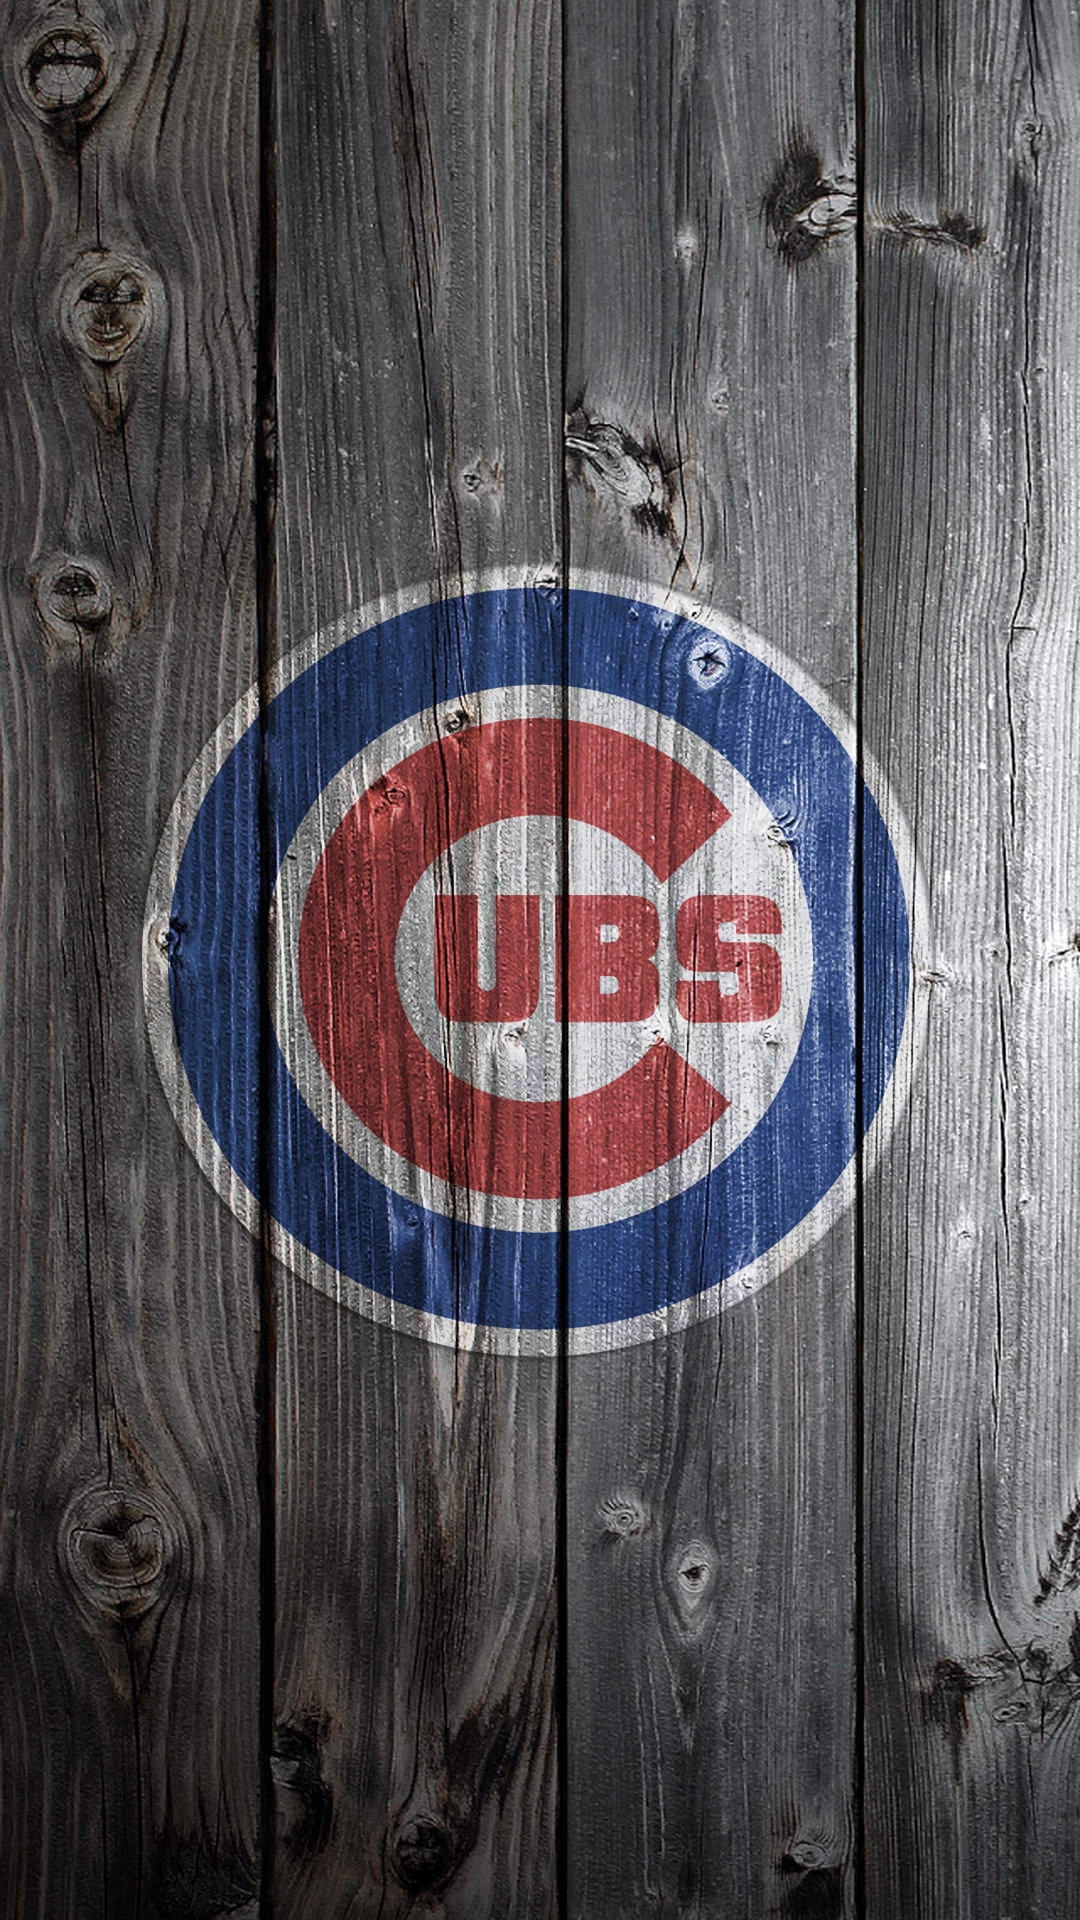 Res: 1080x1920, Chicago Cubs Wallpaper Unique Chicago Cubs Phone Wallpapers B1gbaseball